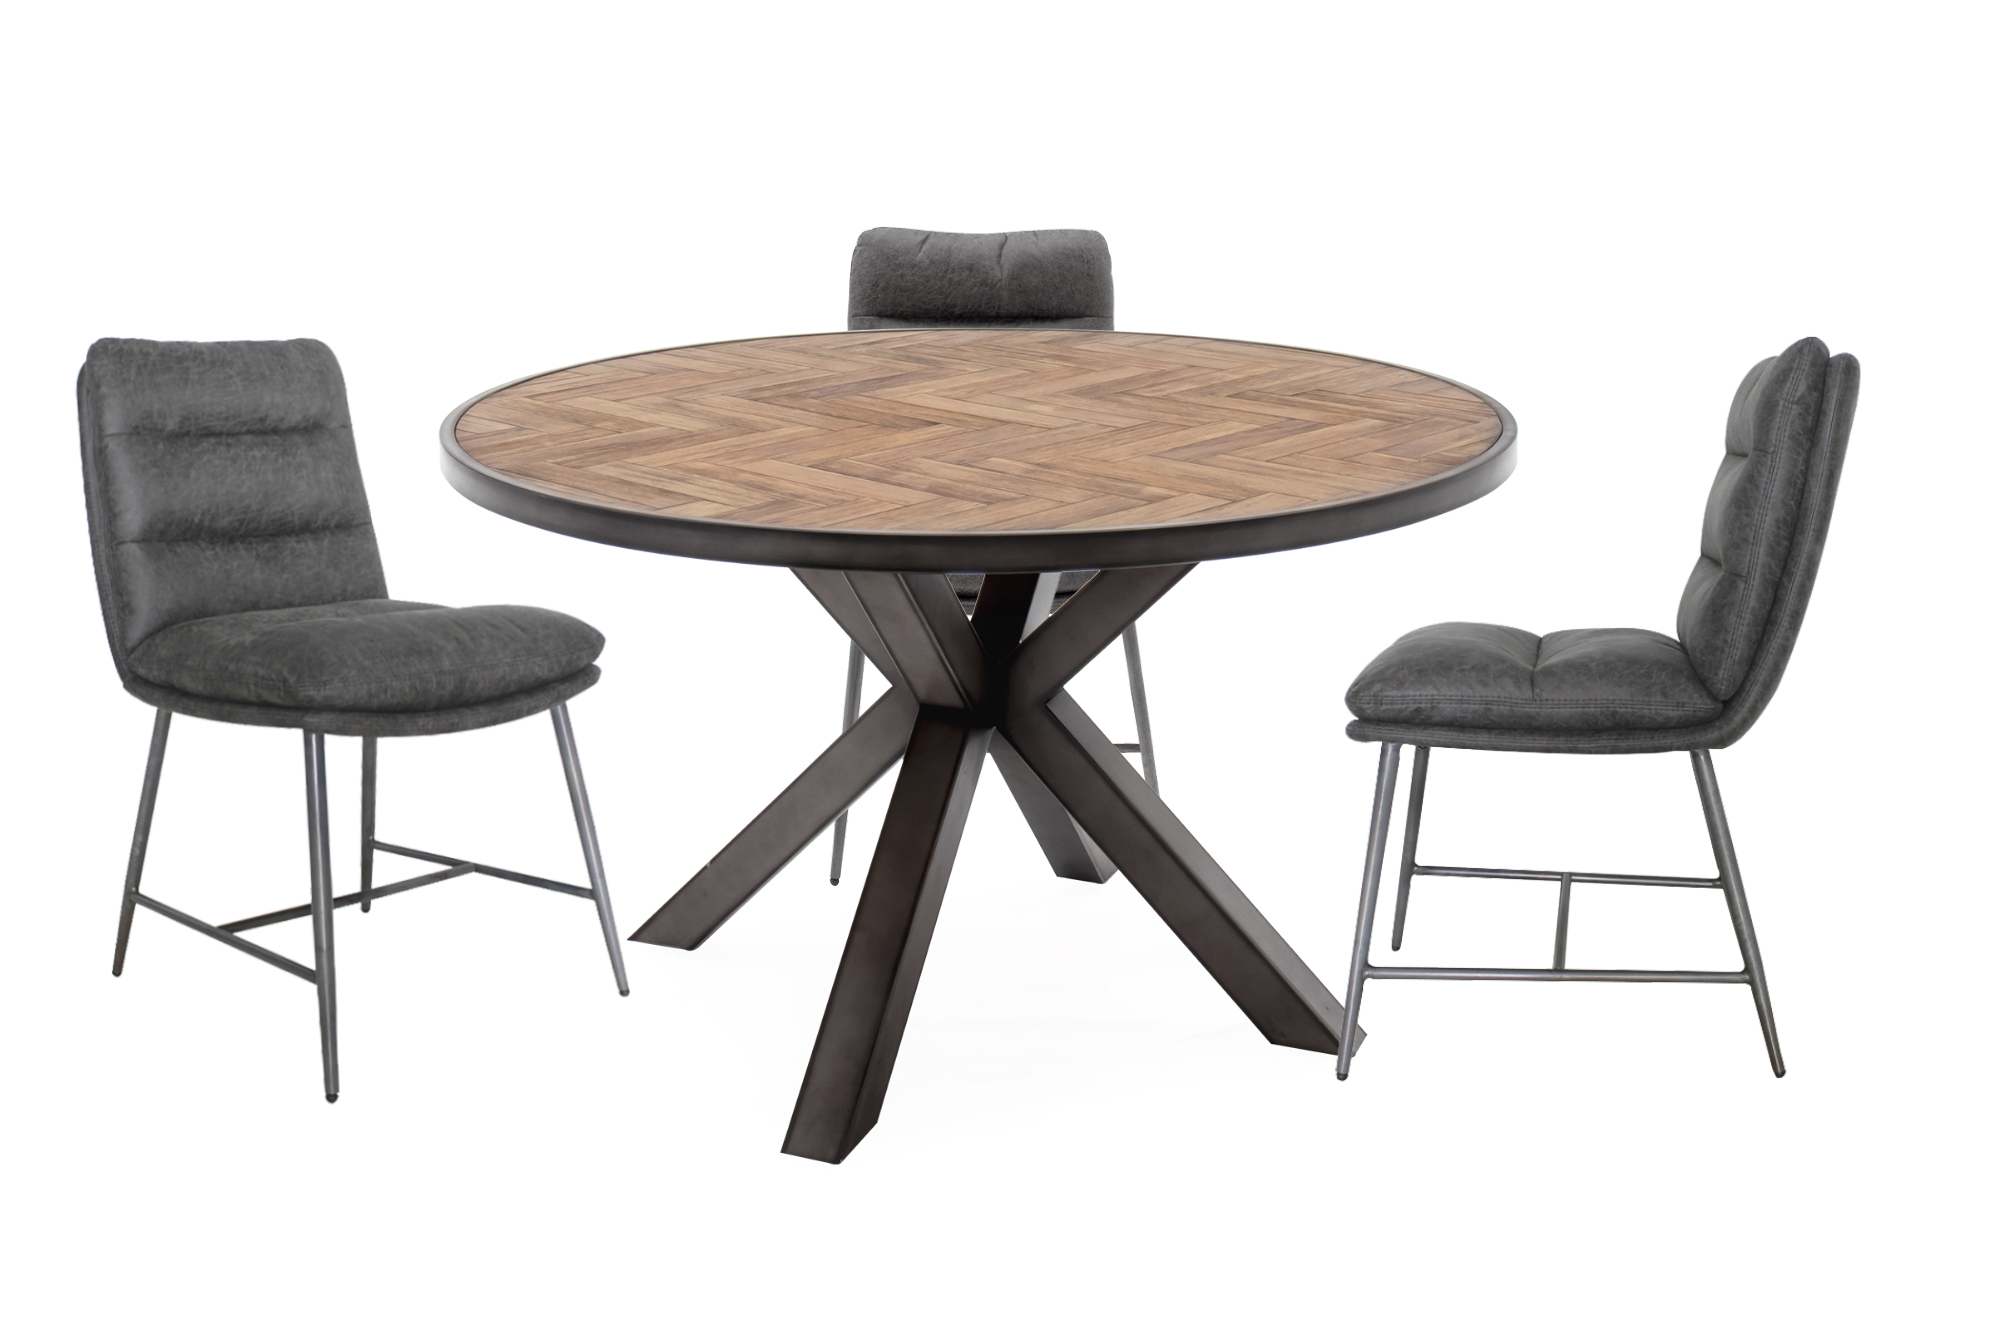 Vanya Round Dining Table with Romy Chairs